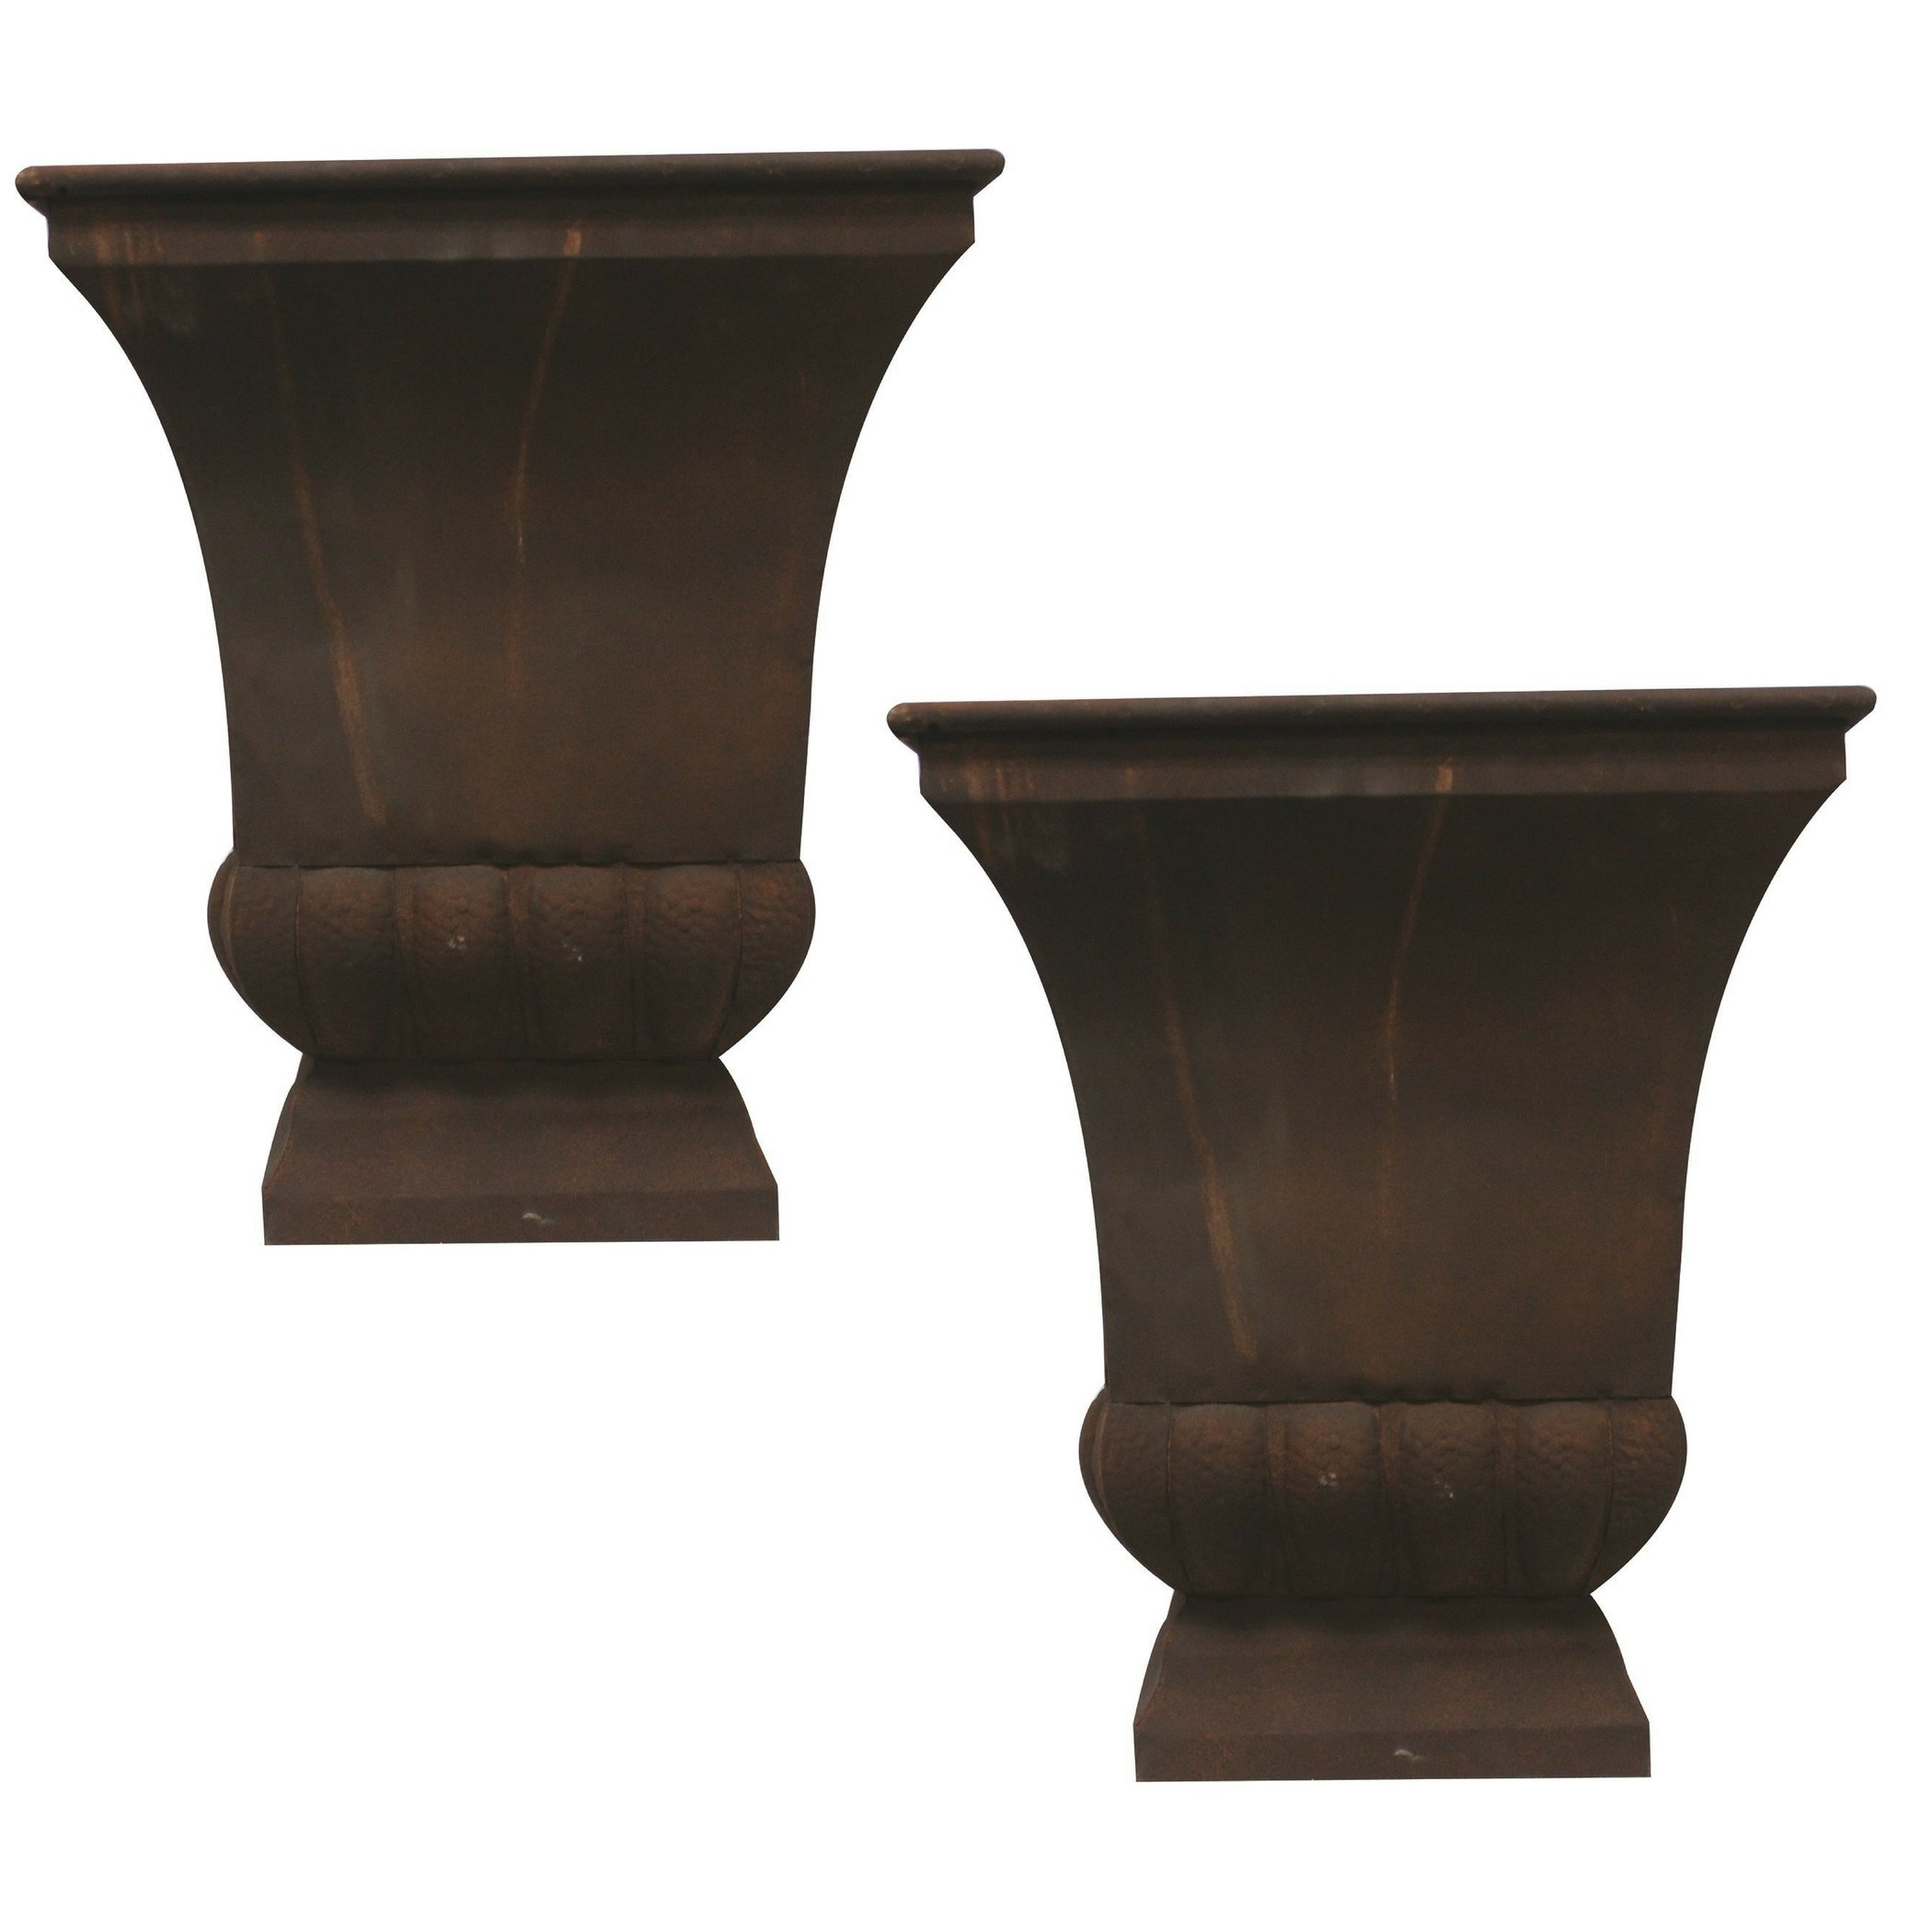 Gardman 8225 Large Rustic Metal Urn Planter, 15.75'' Long x 15.75'' Wide x 18'' High (2)